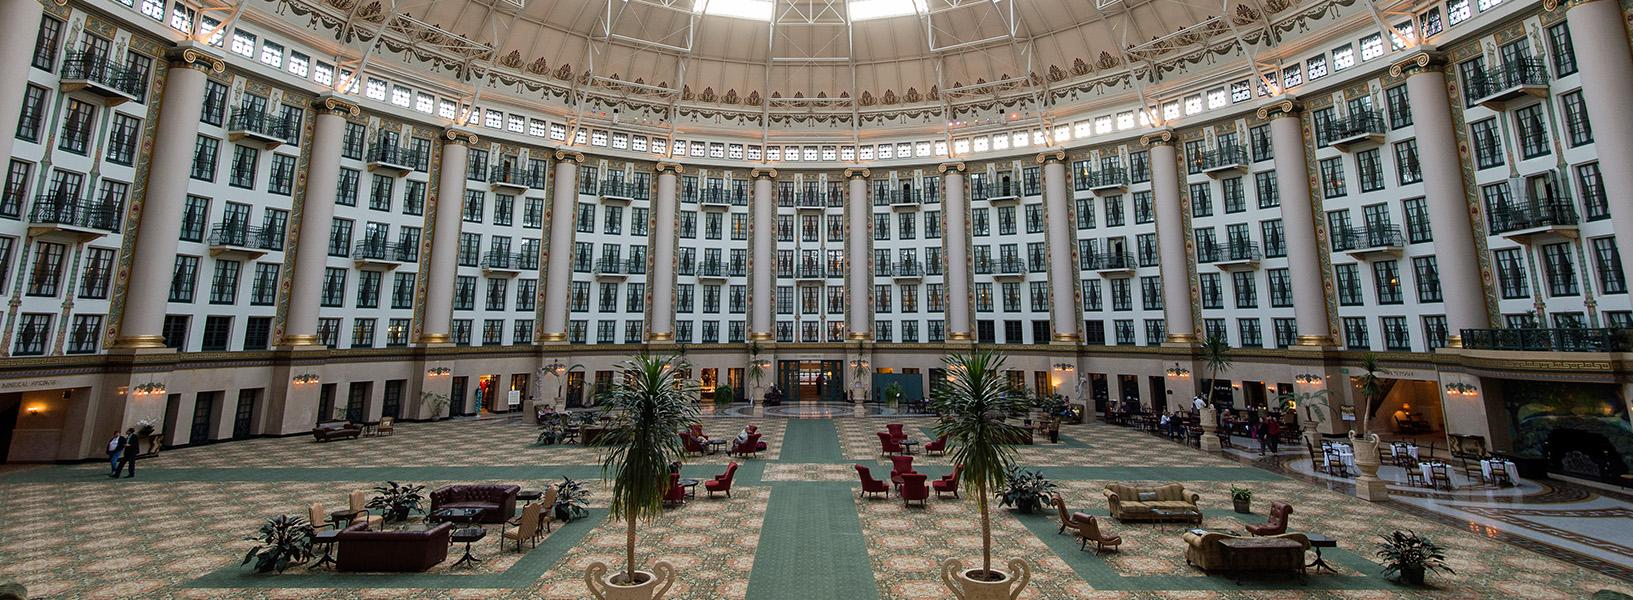 French lick baden hotel